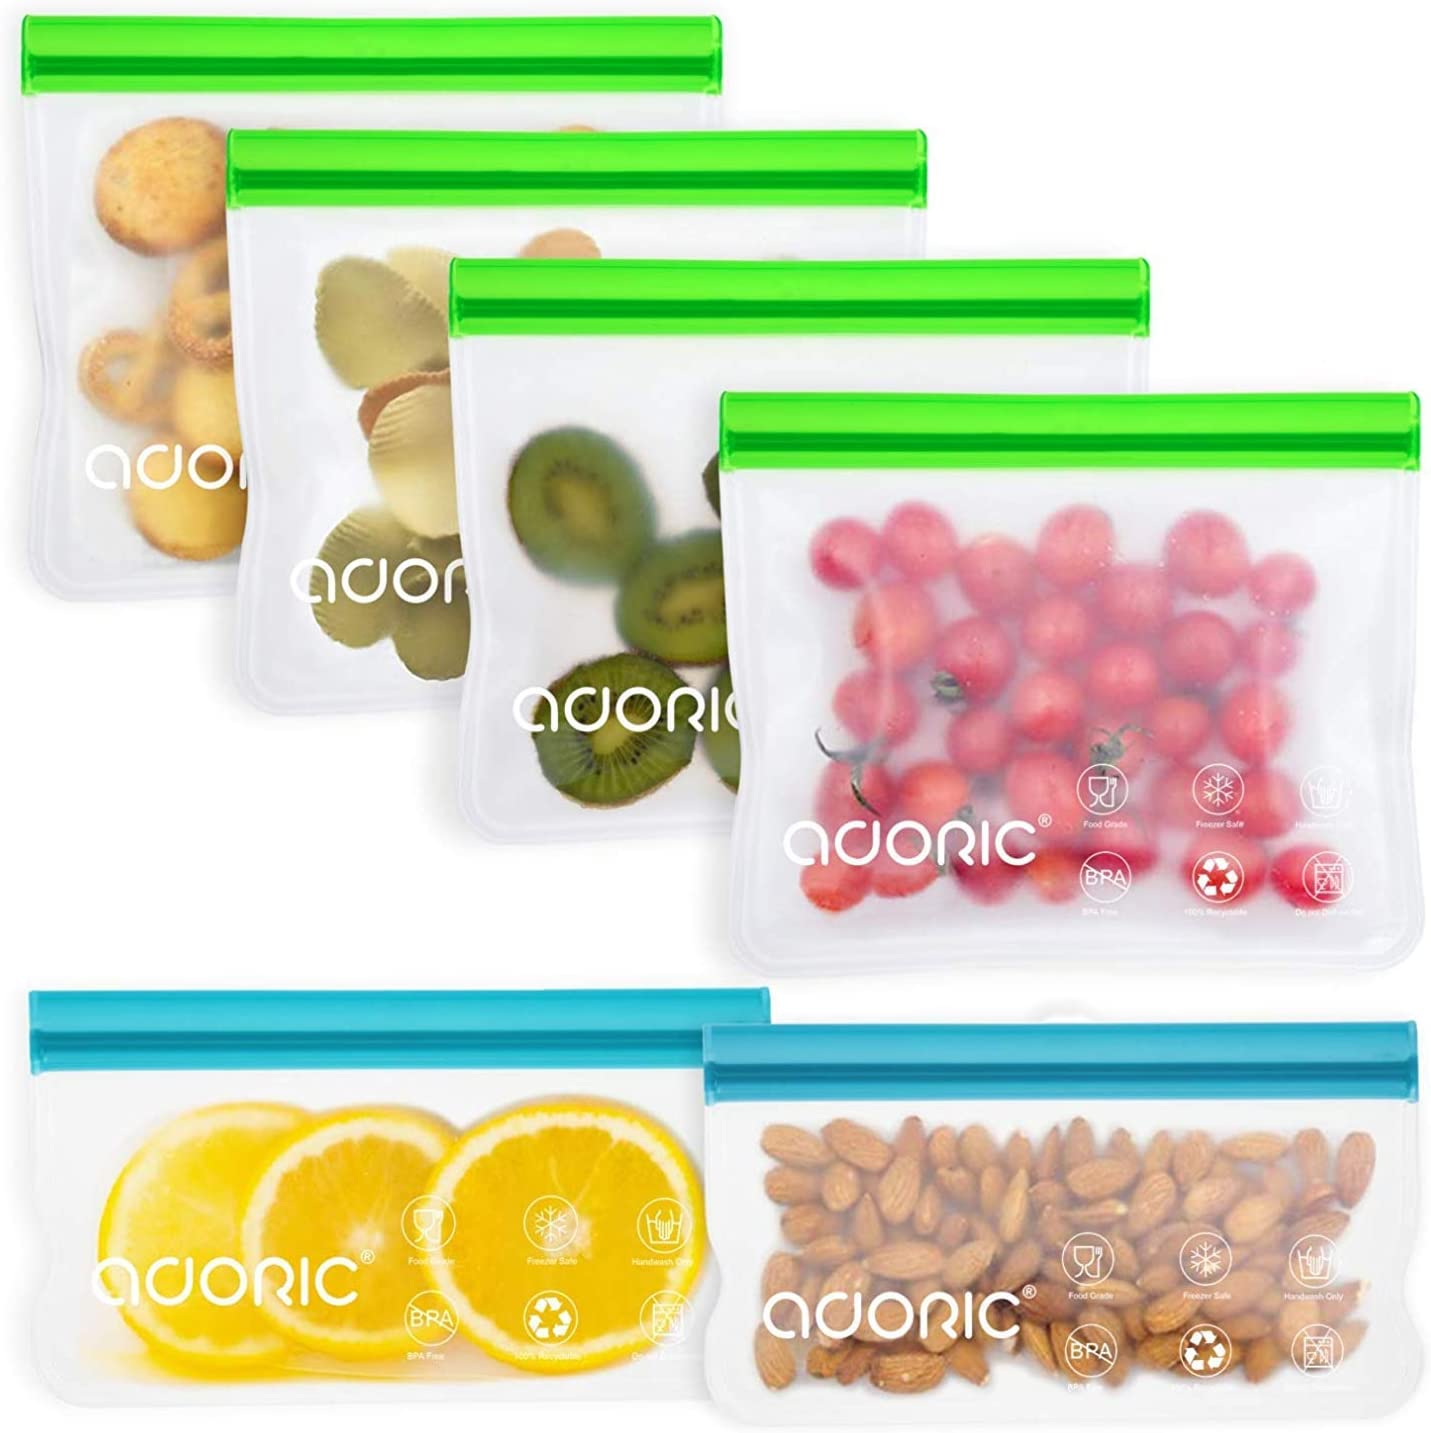 Adoric Reusable Snack Bags, Silicone Food Storage Bags BPA Free, Eco-Friendly Airtight Seal Ziplock Lunch Bag for Snacks, Fruits, Sandwiches(4 Medium +2 Small)